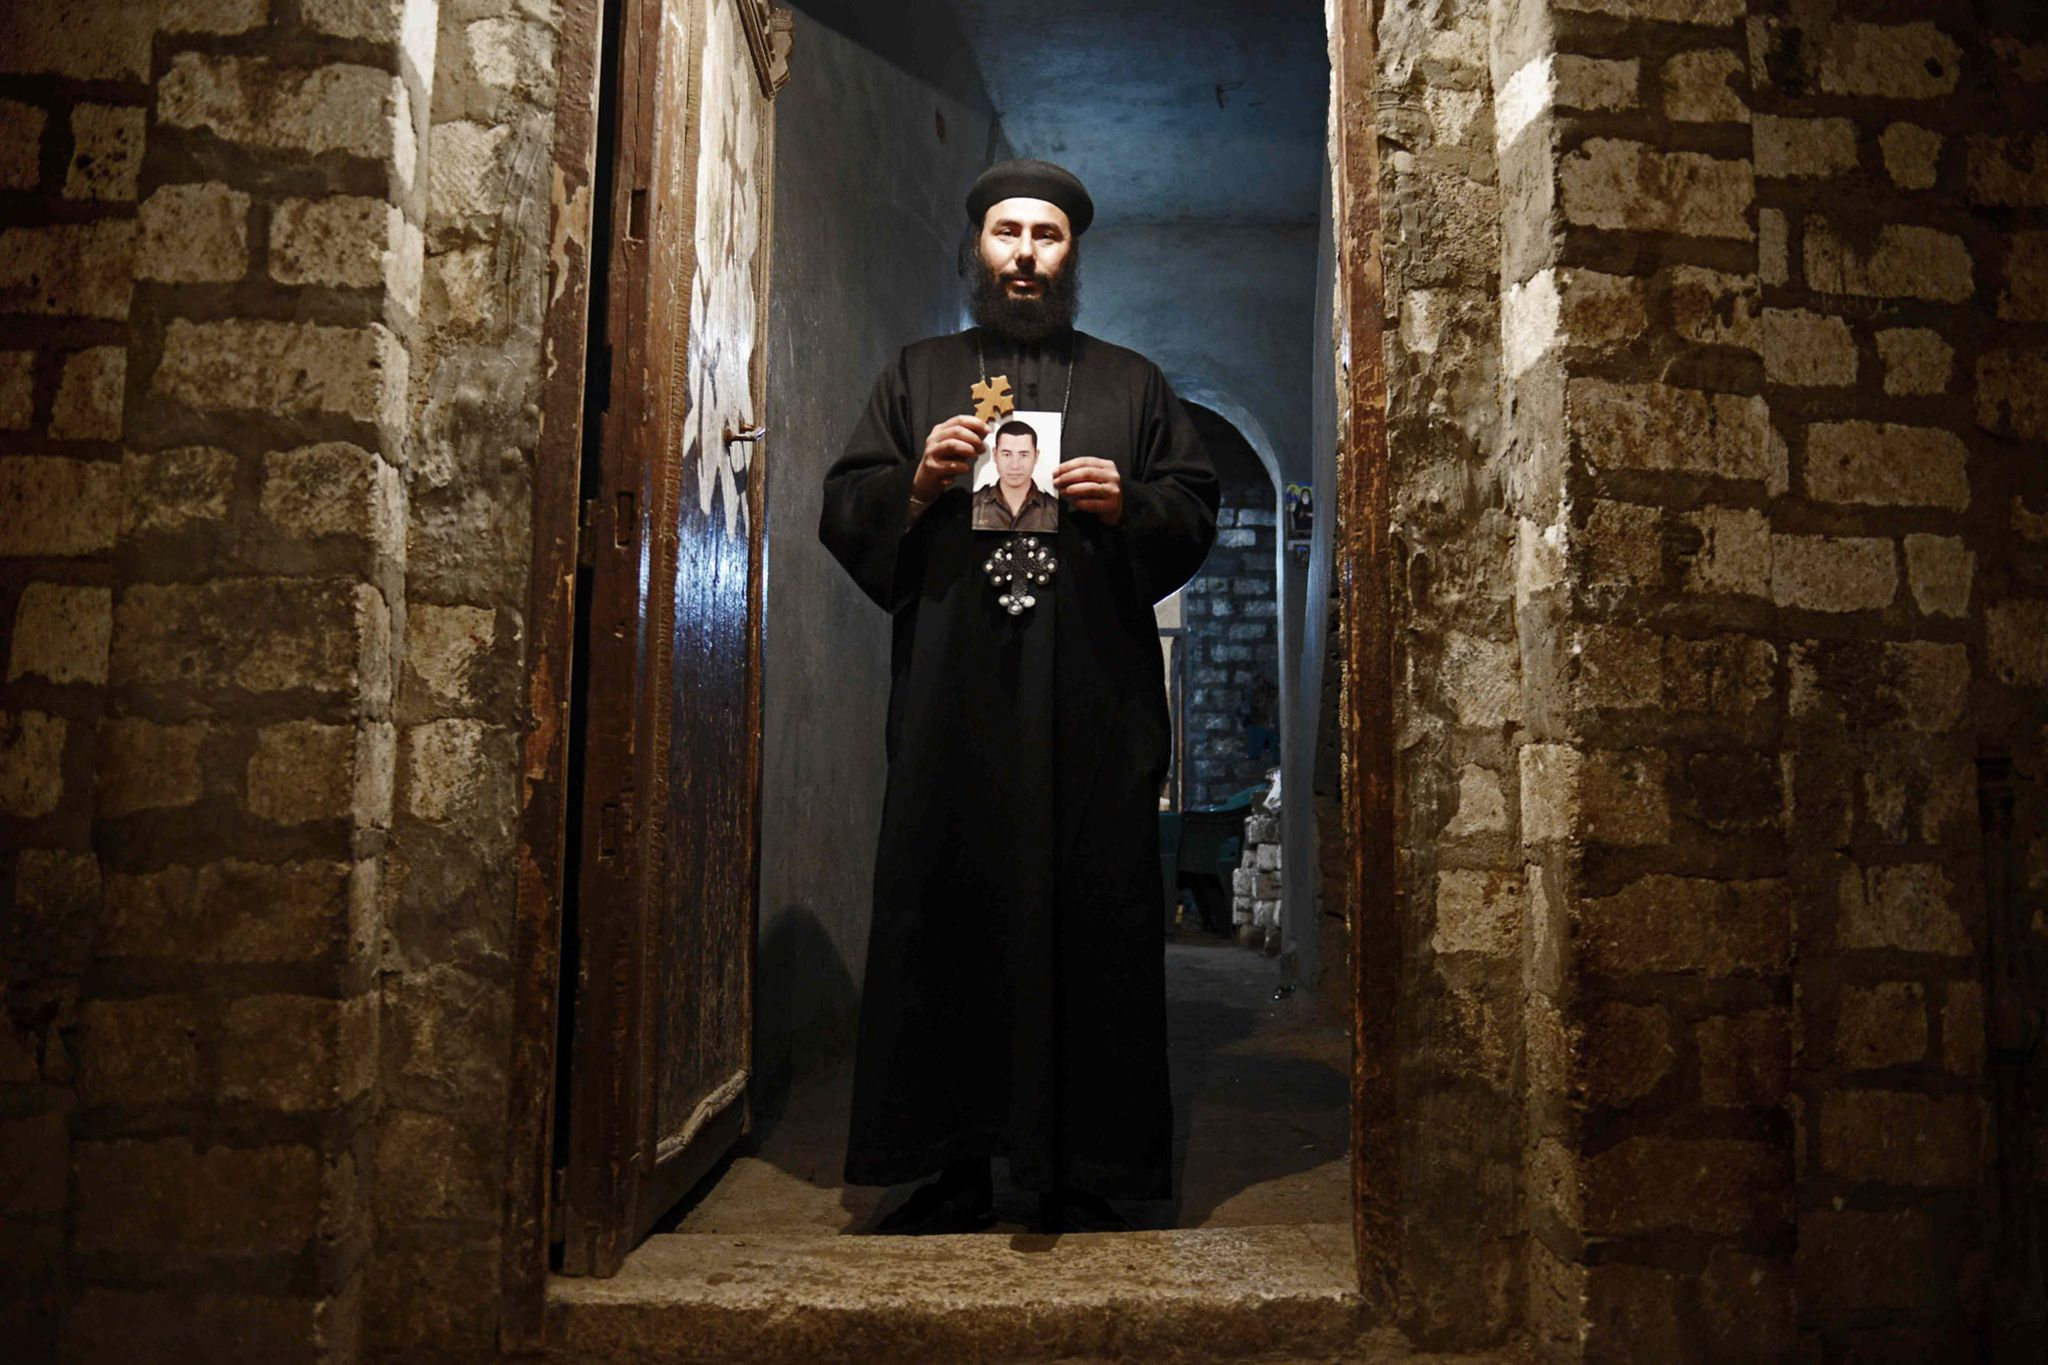 Picture of Bishop Botrous, uncle of 23-year-old slain laborer Mina Fayez by Jonathan Rashad | Town Al Aour, 13 of its residents were shown being beheaded in a video released by the Islamic State (ISIS). The town's victims were among 21 Coptic Christians whom ISIS says it beheaded after kidnapping them from migrant worker dormitories in Libya.